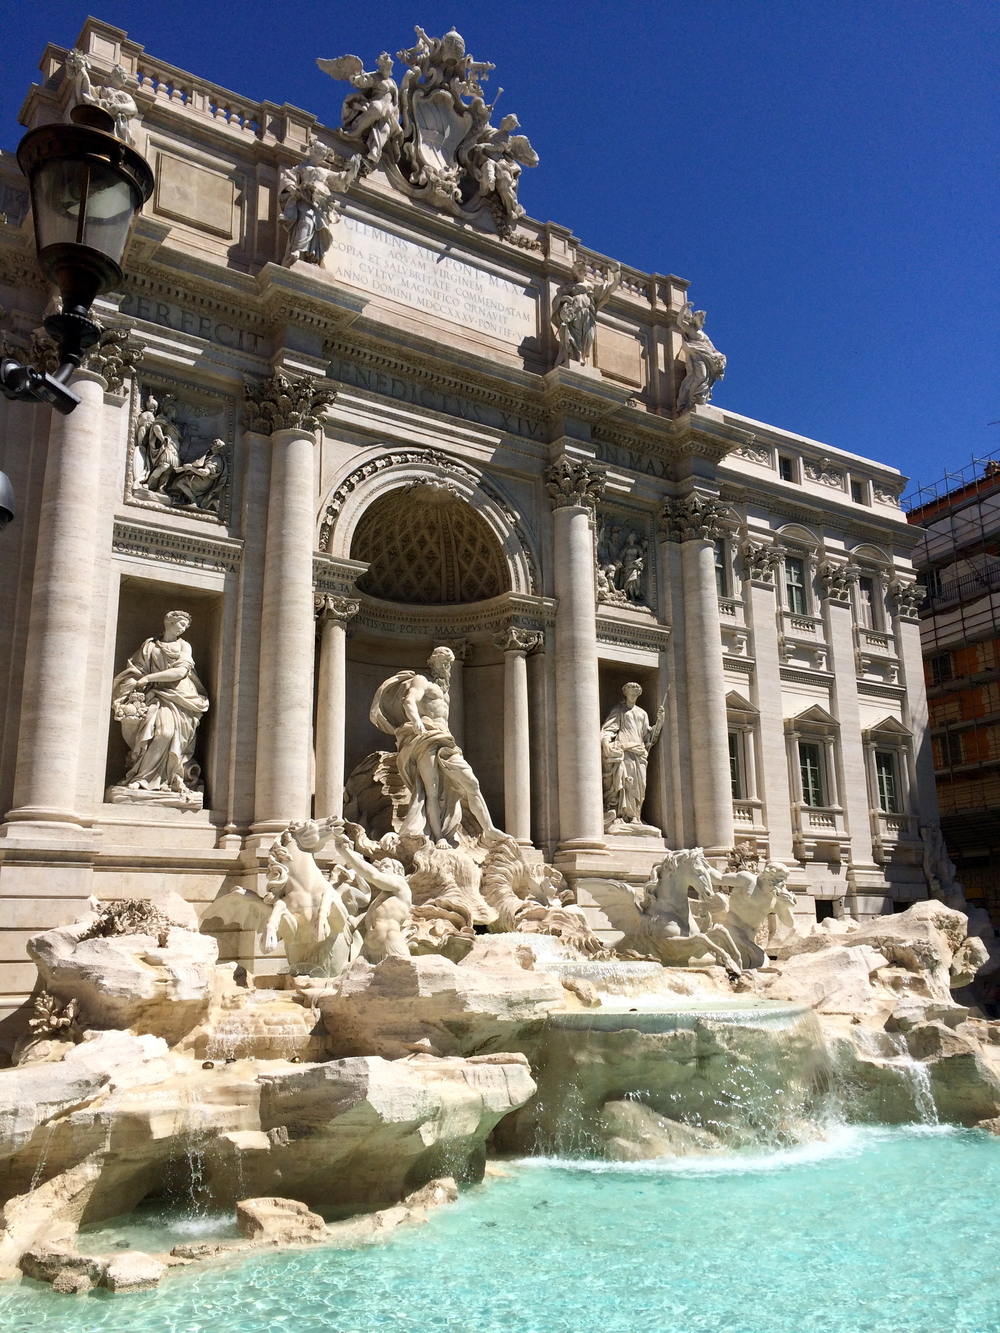 ◆ Trevi Fountain